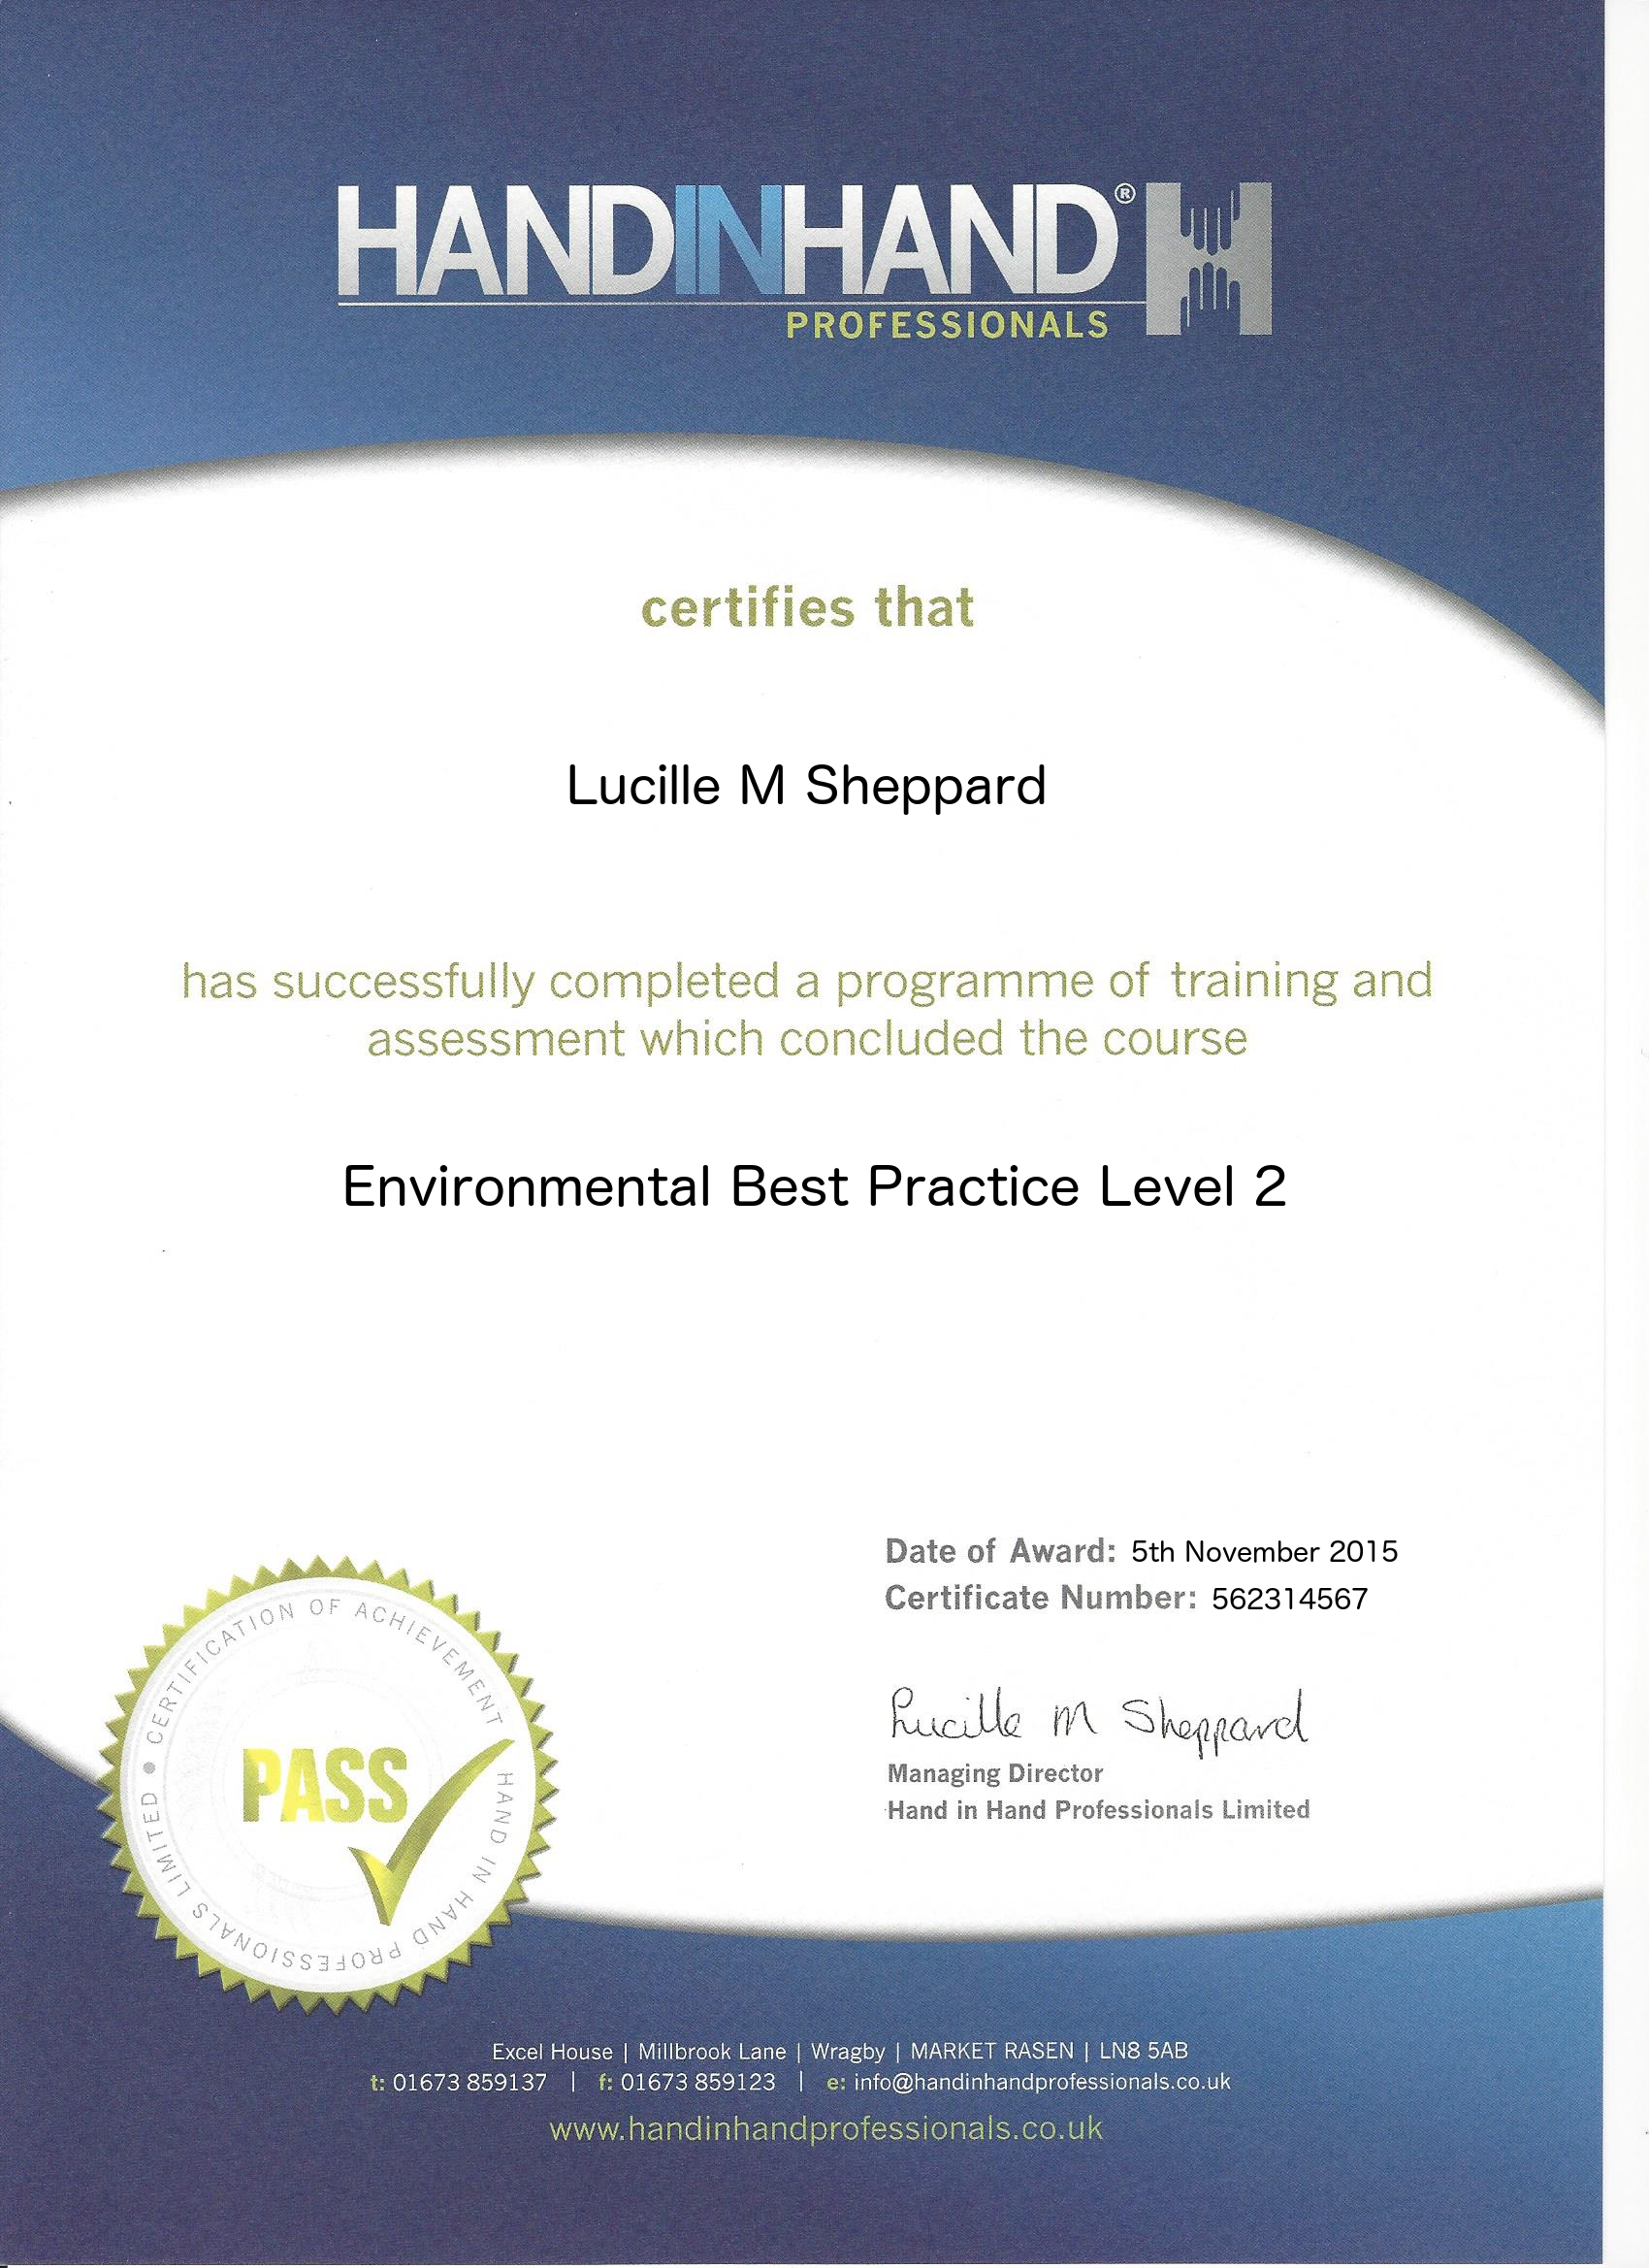 environmental best practice level 2 course certificate